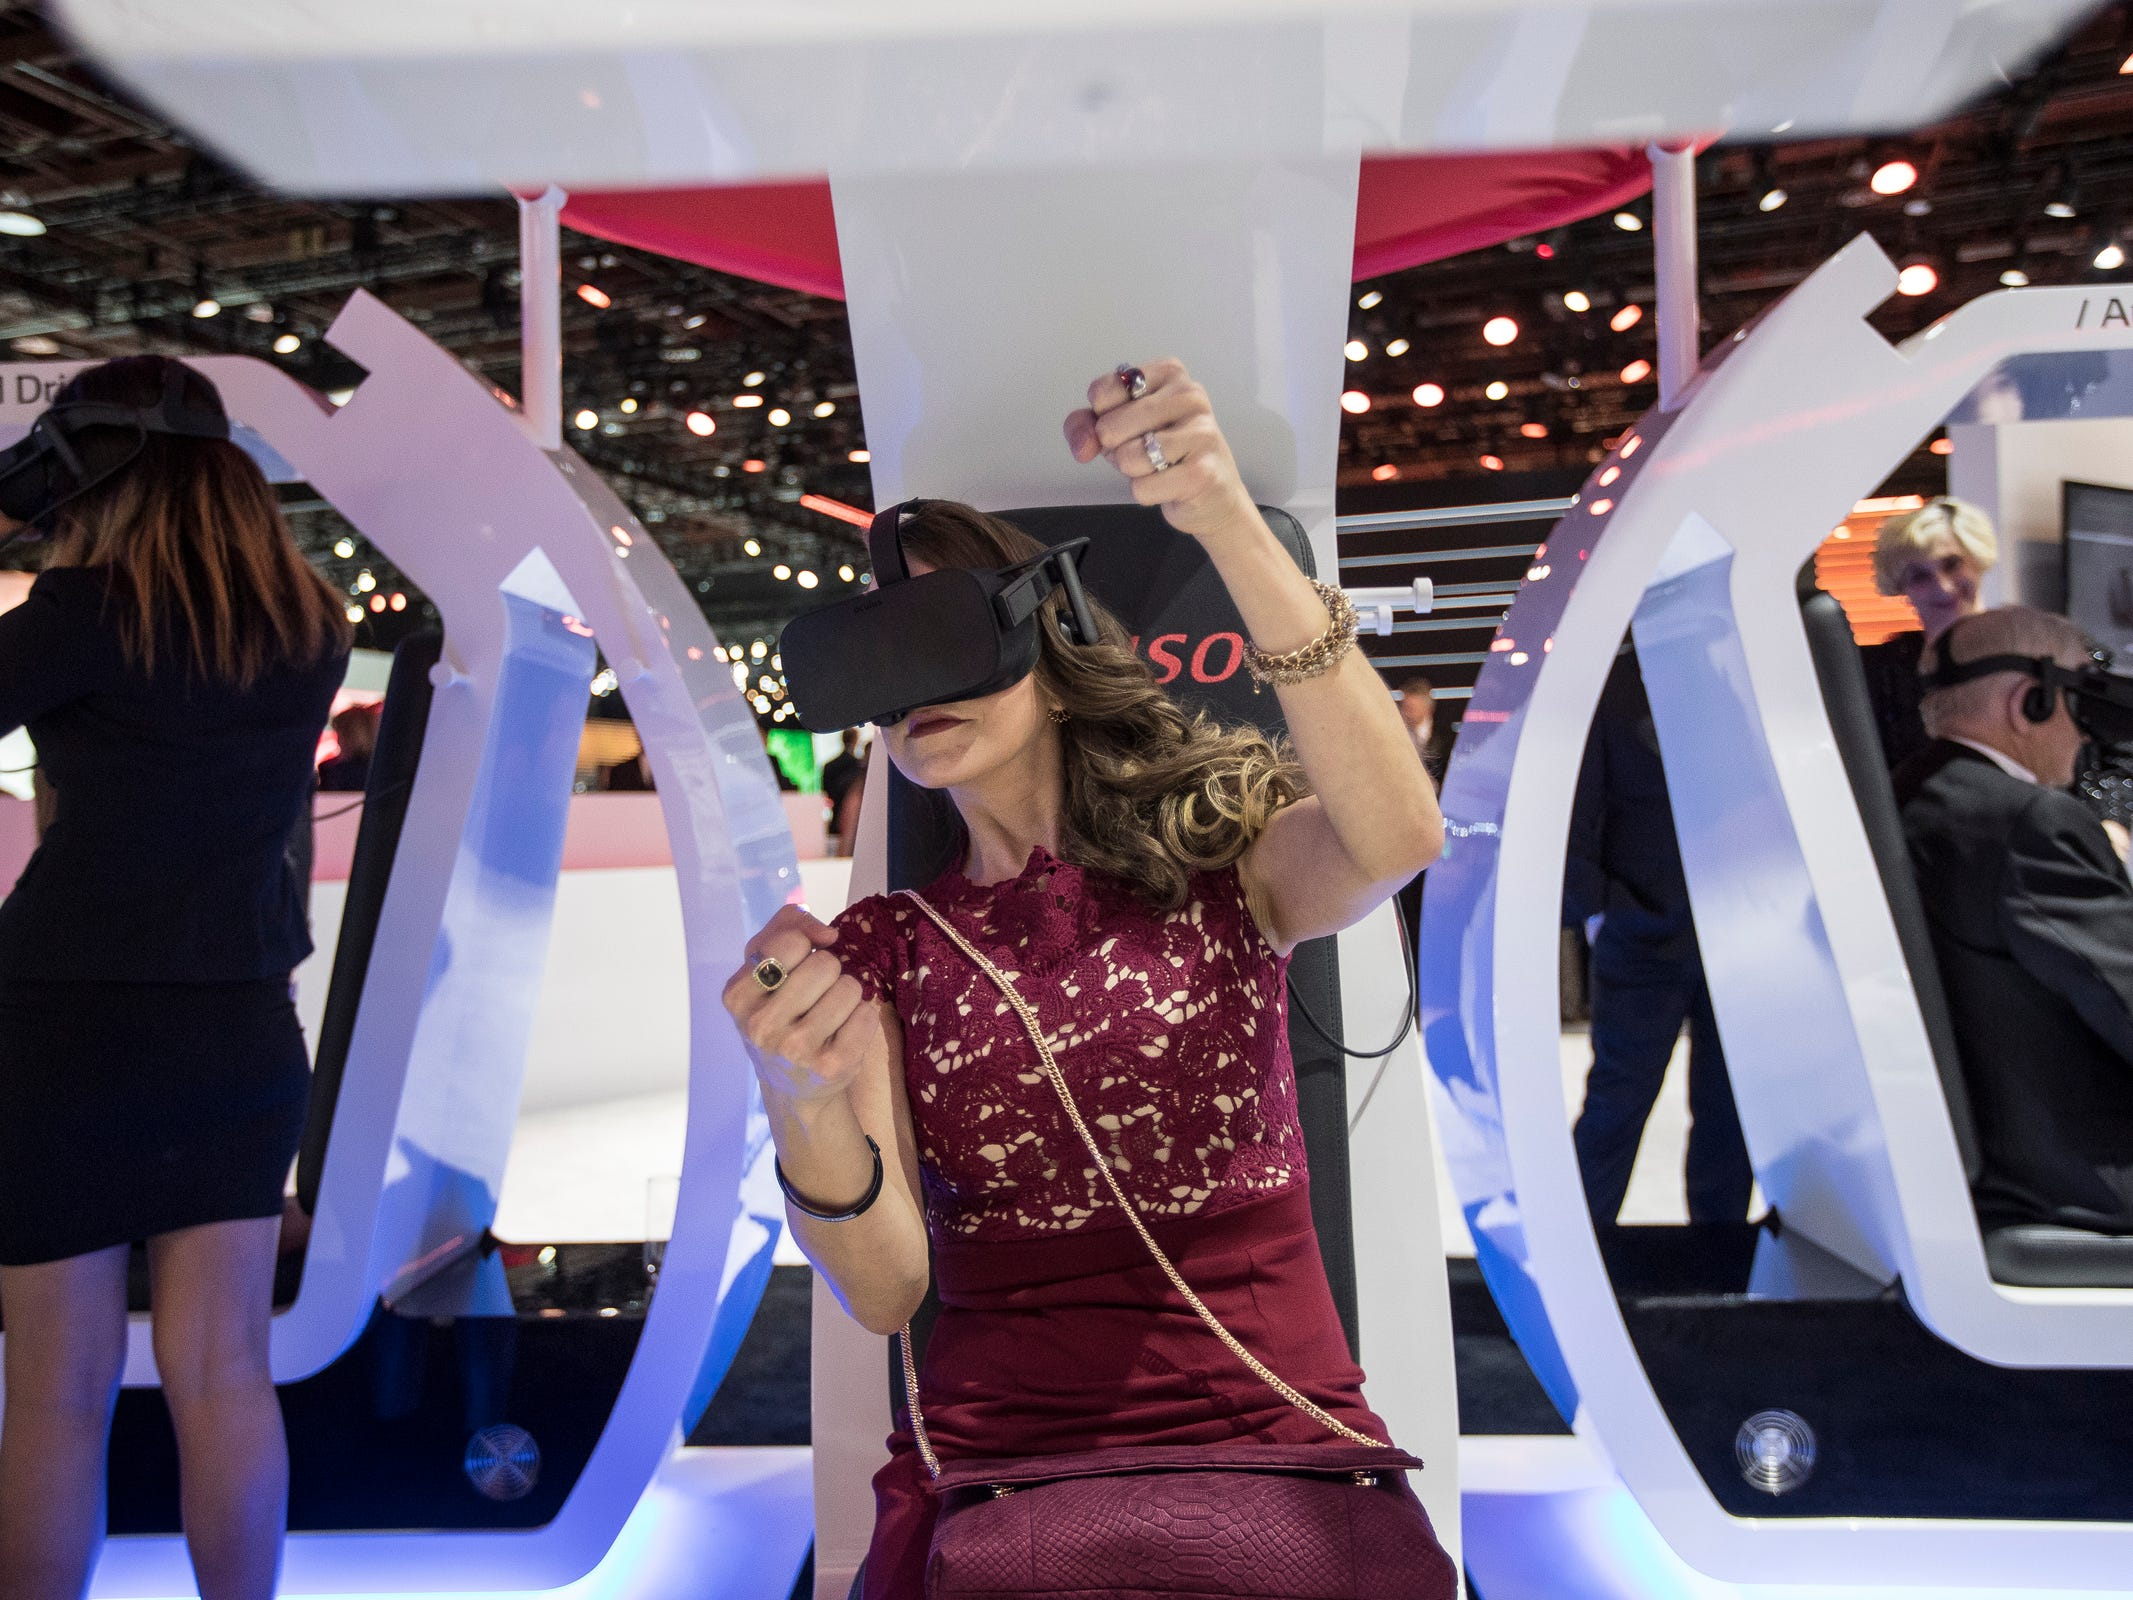 Amber Sharrow of Novi tries on the virtual reality simulation of autonomous drive at Denson during the 2019 North American International Auto Show Charity Preview at Cobo Center in Detroit on Friday, January 18, 2019.